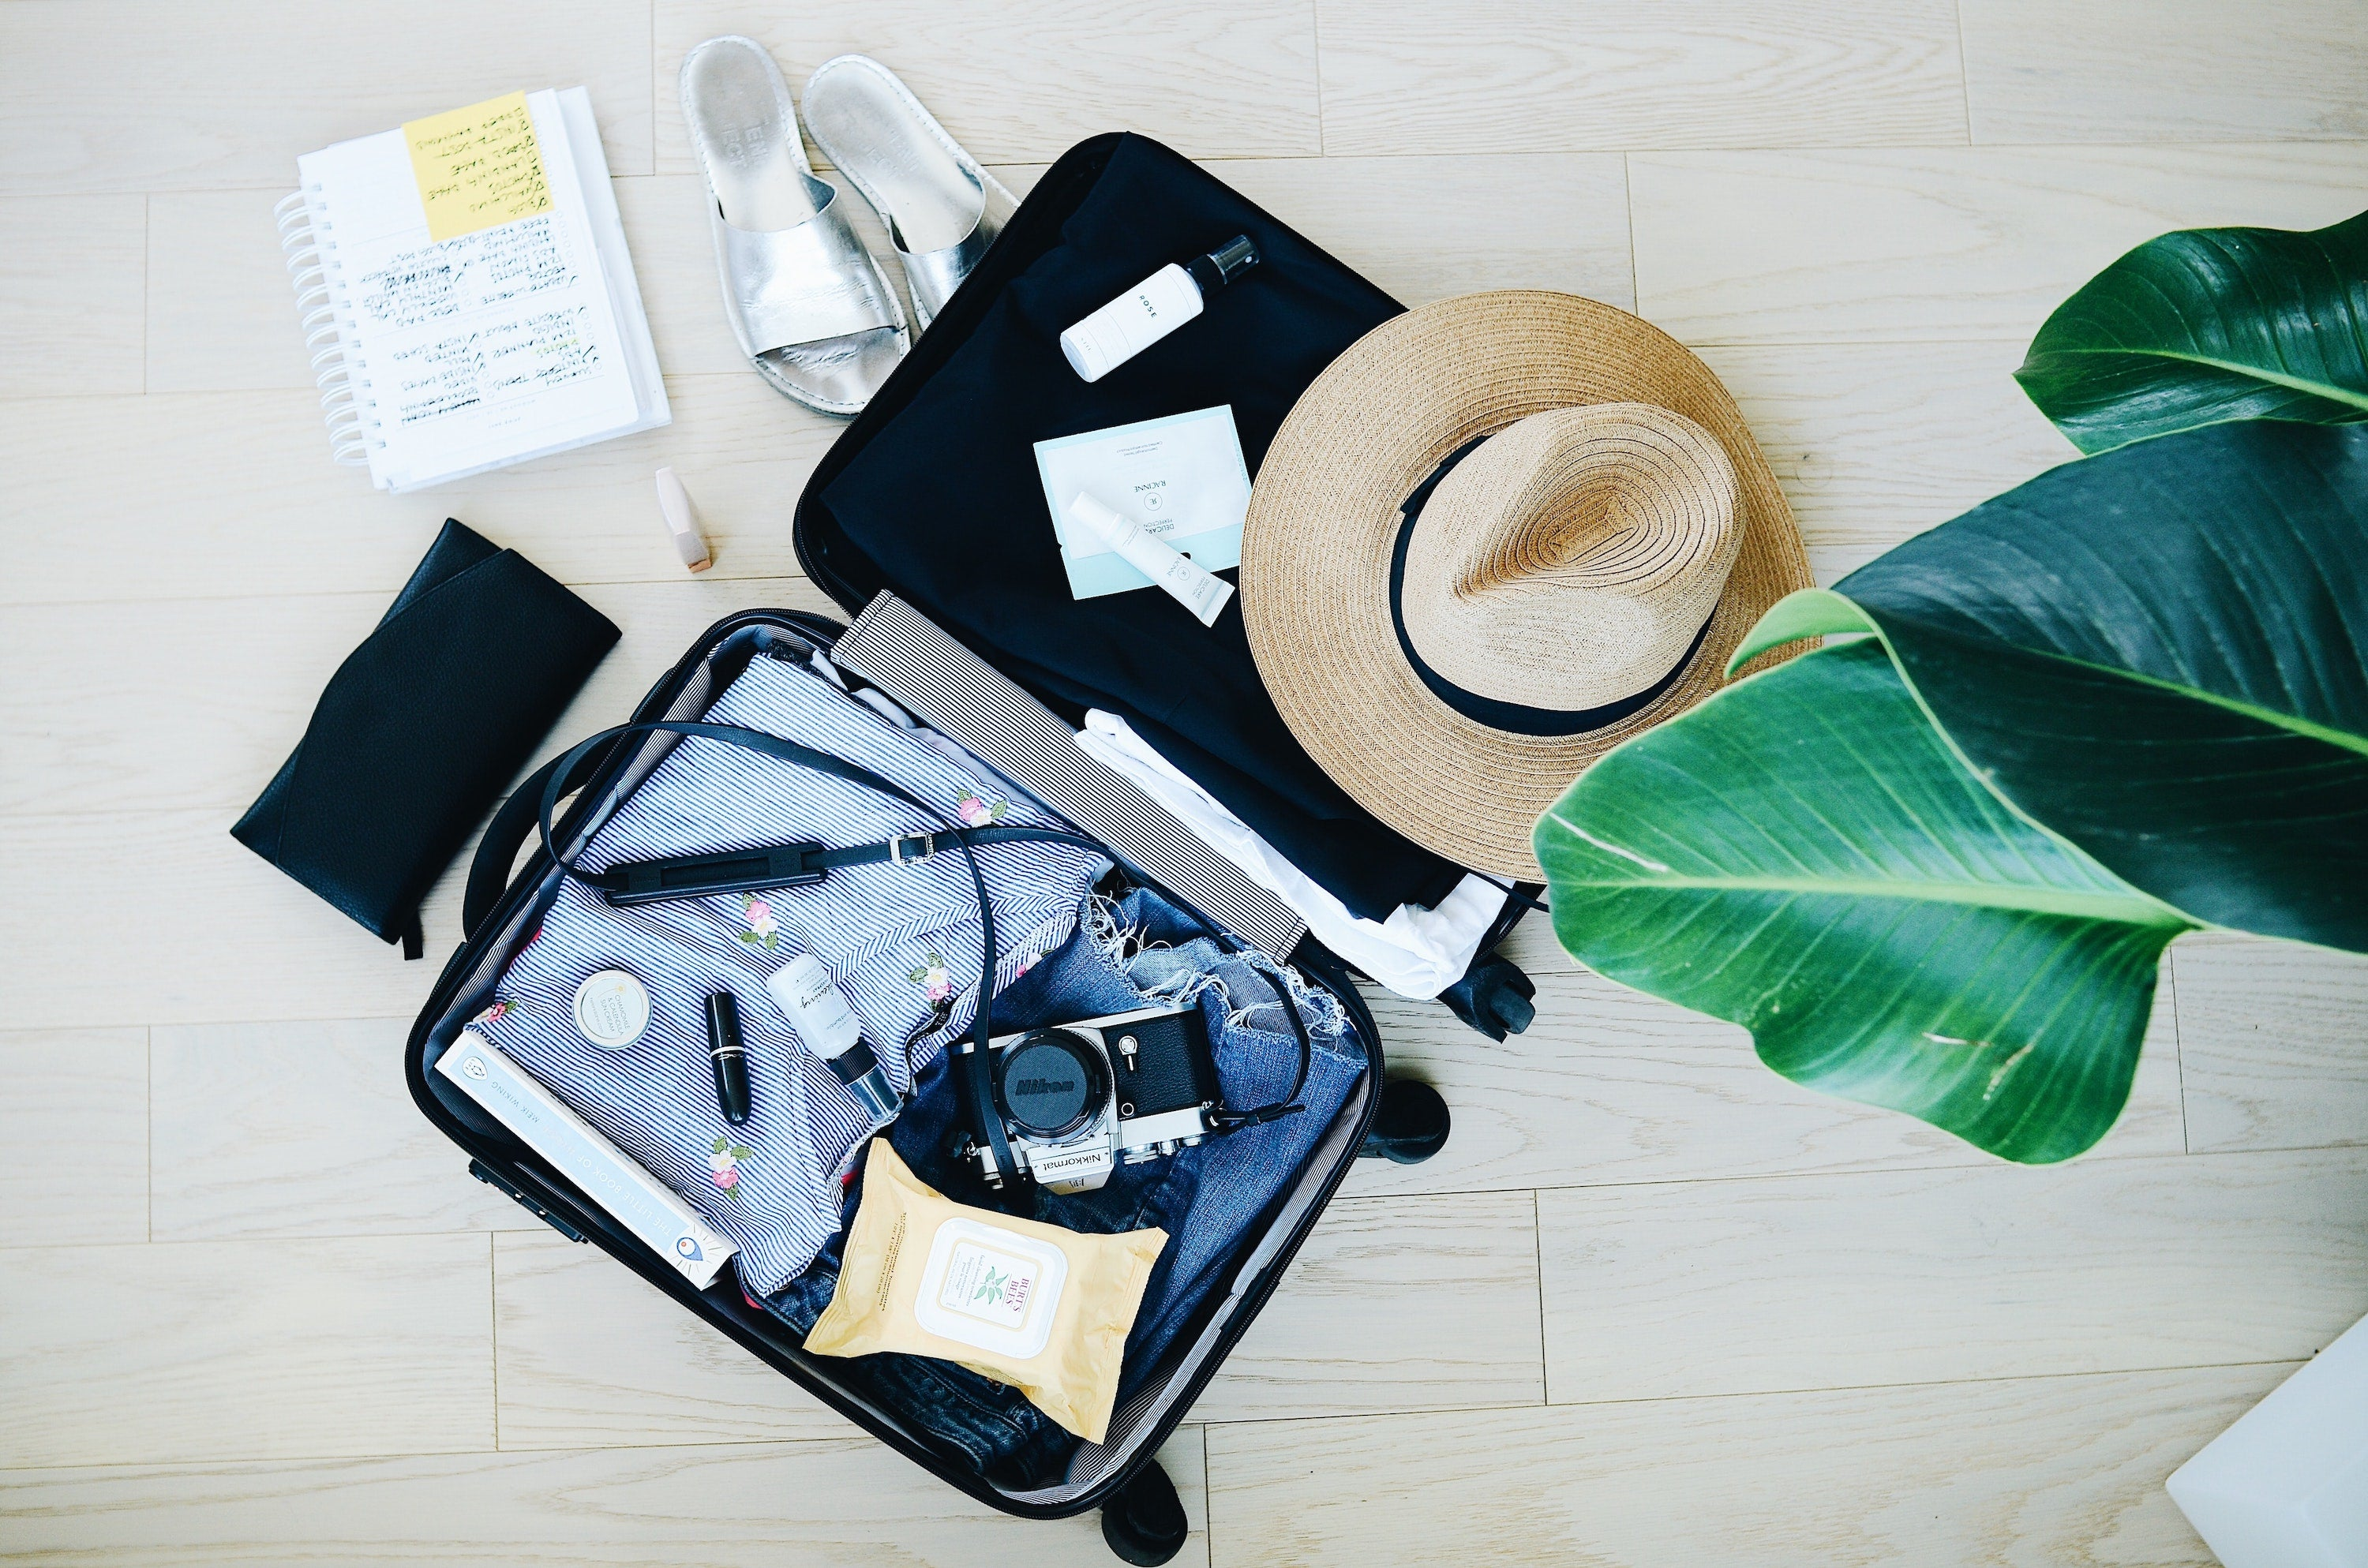 8 travel things to bring